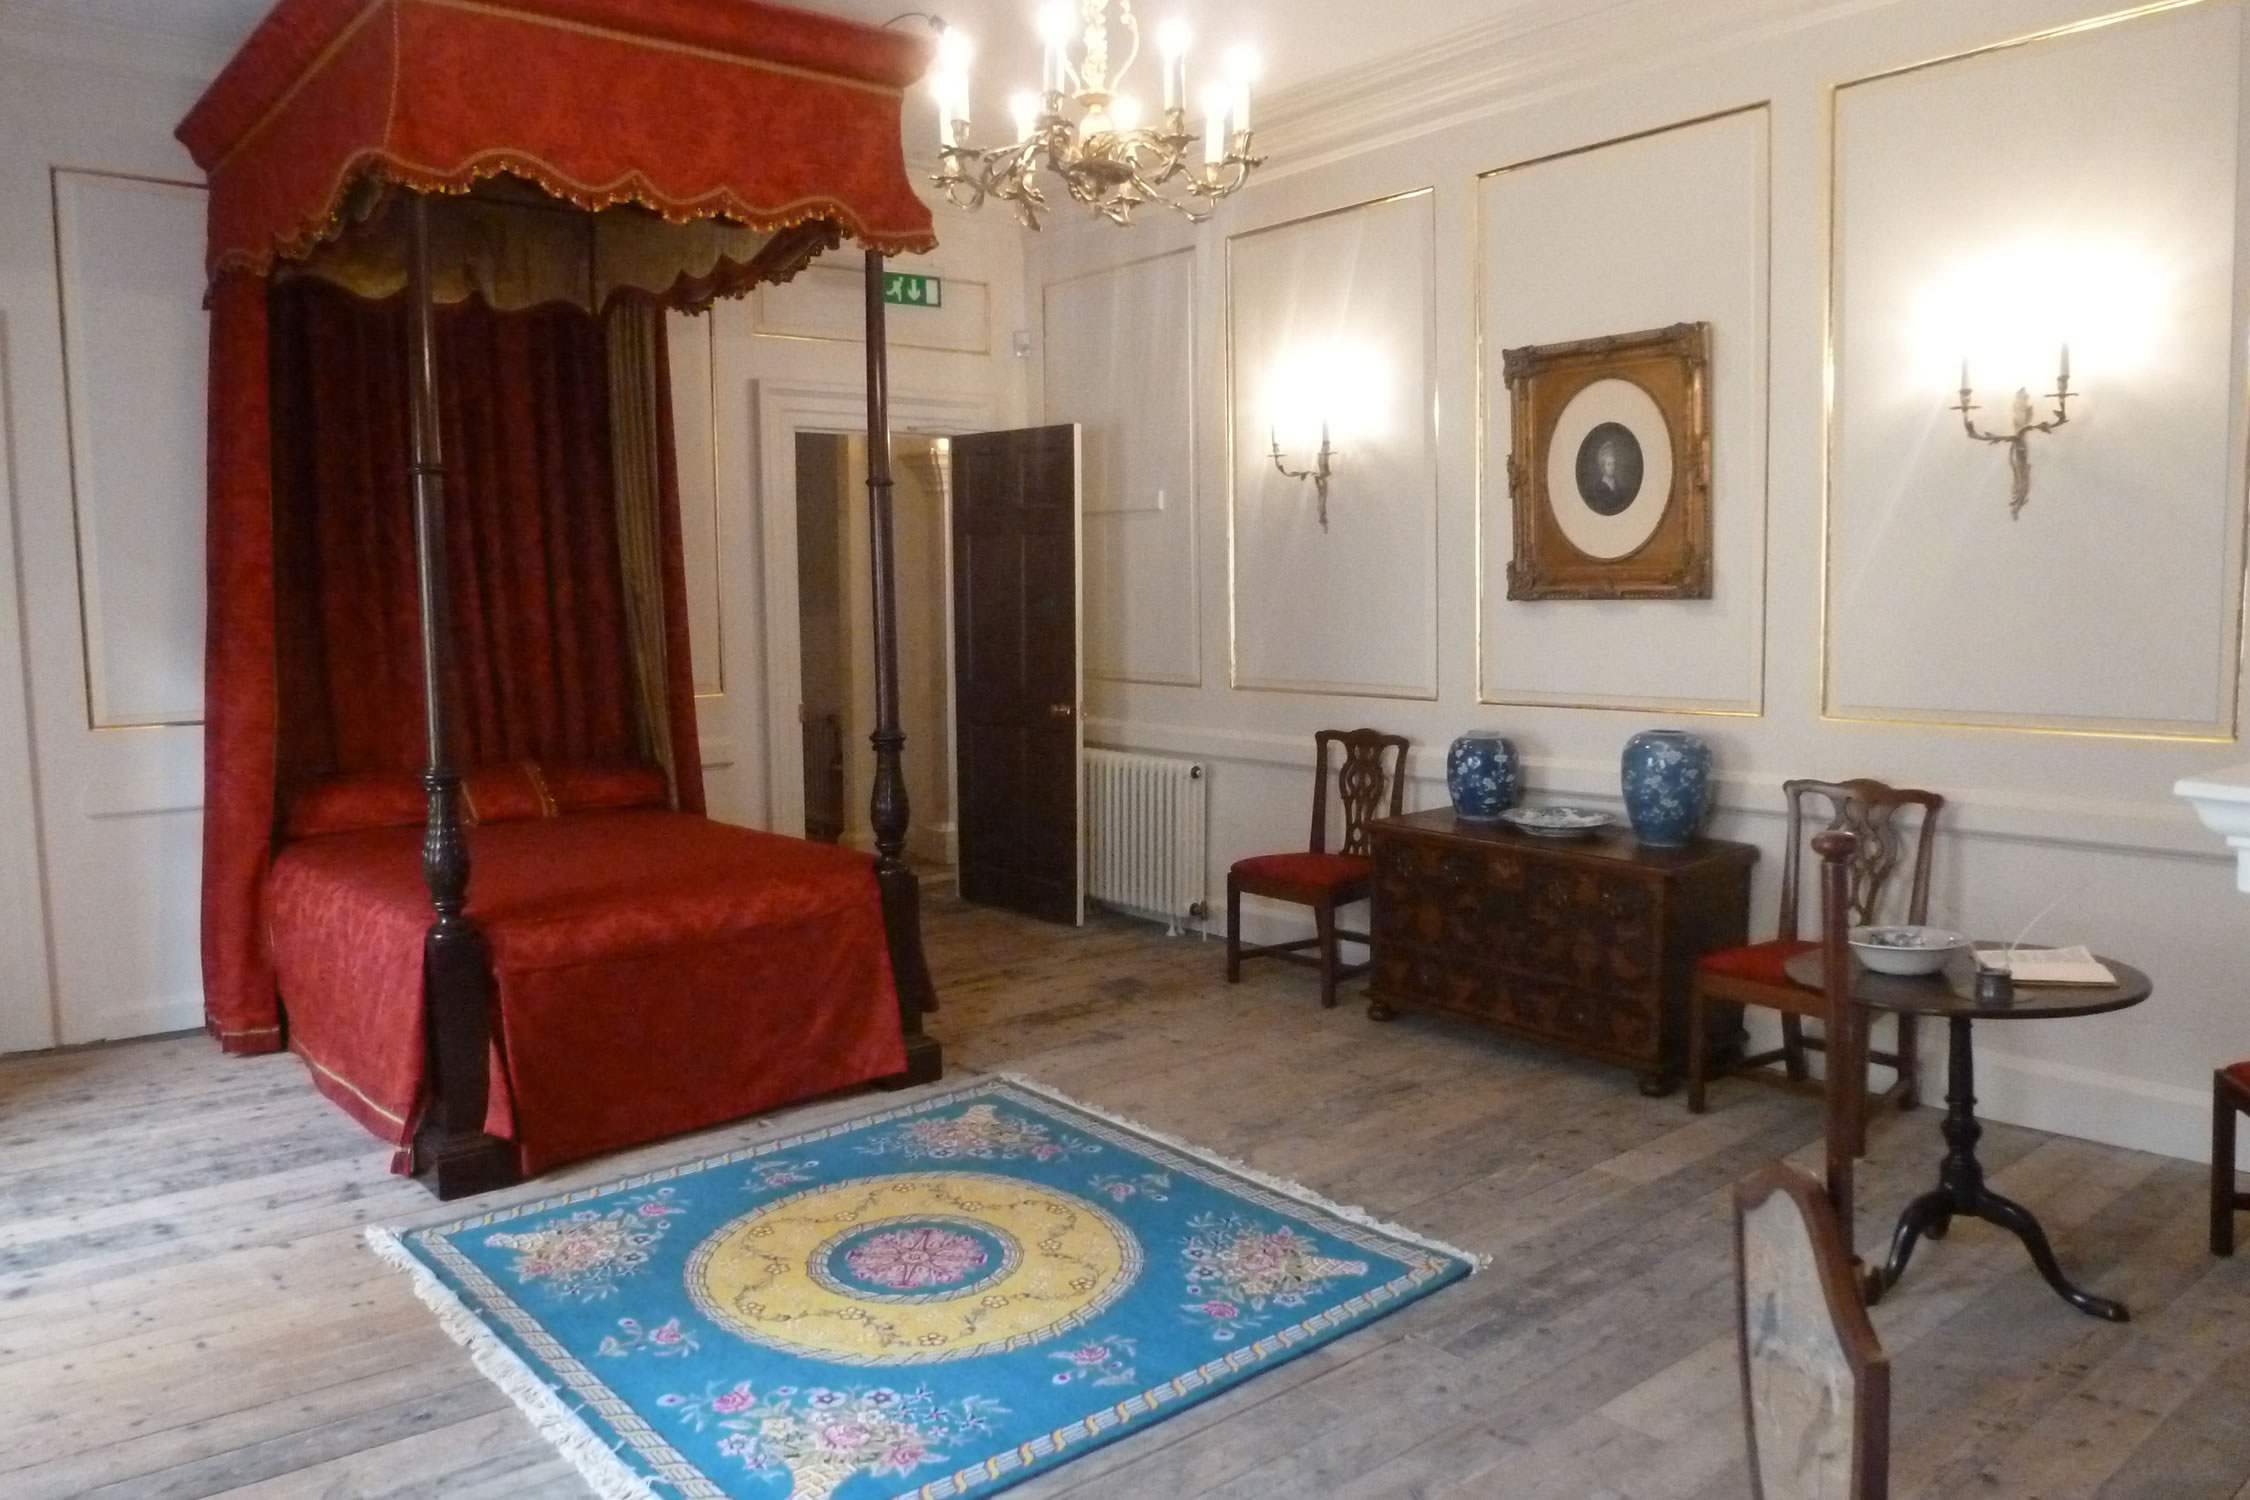 Lady Stepney's C18th Bedchamber, for Llanelly House, Carmathenshire